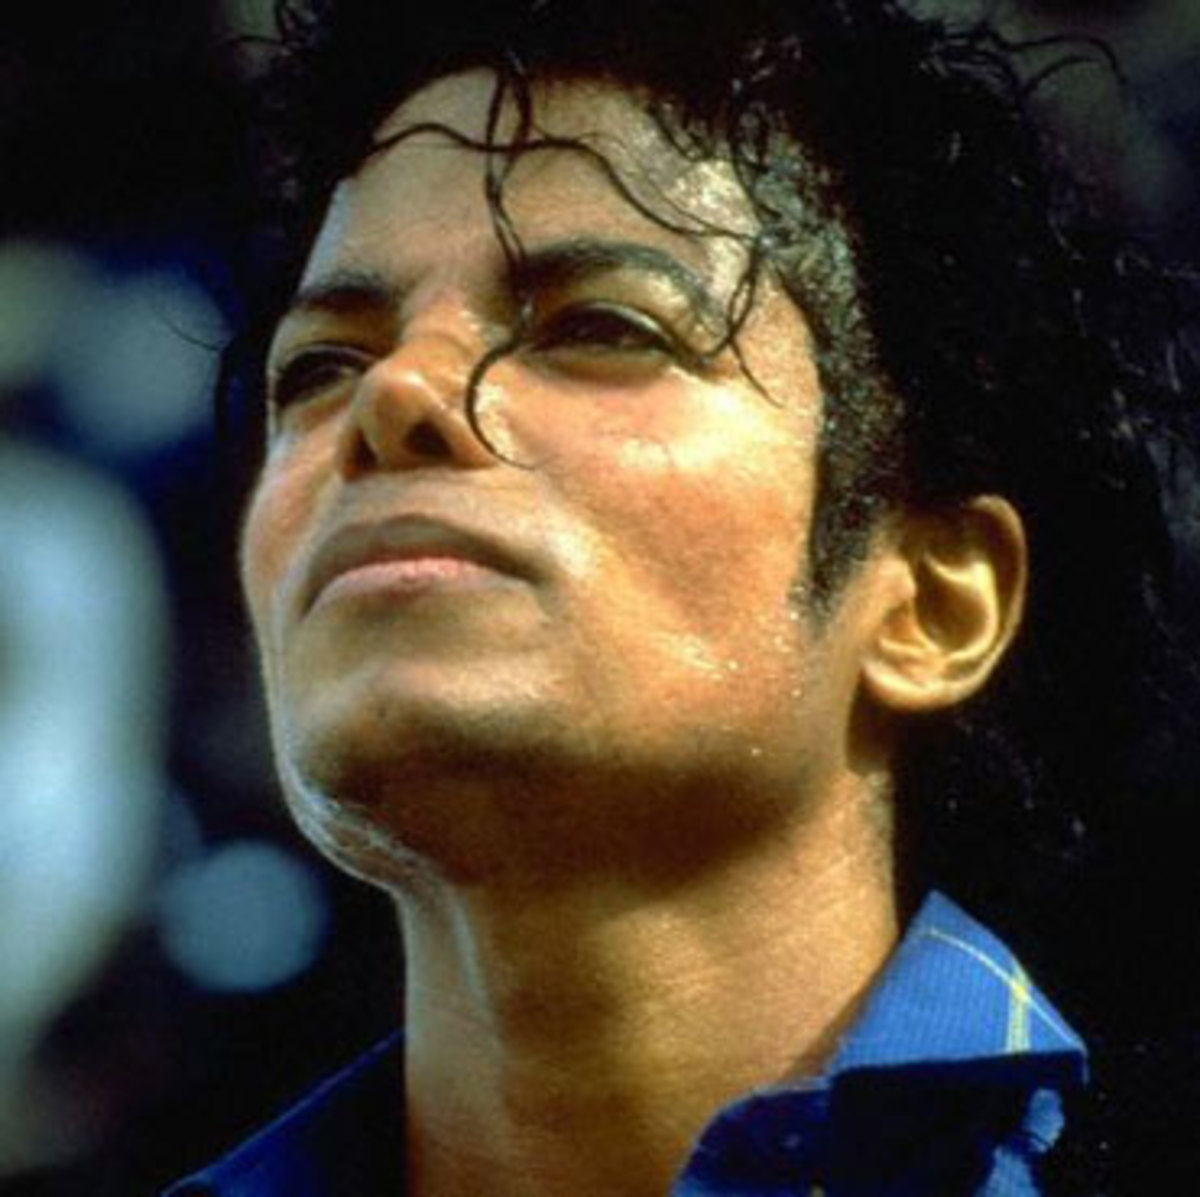 michael-jacksons-childhood-and-its-effect-on-his-adult-life